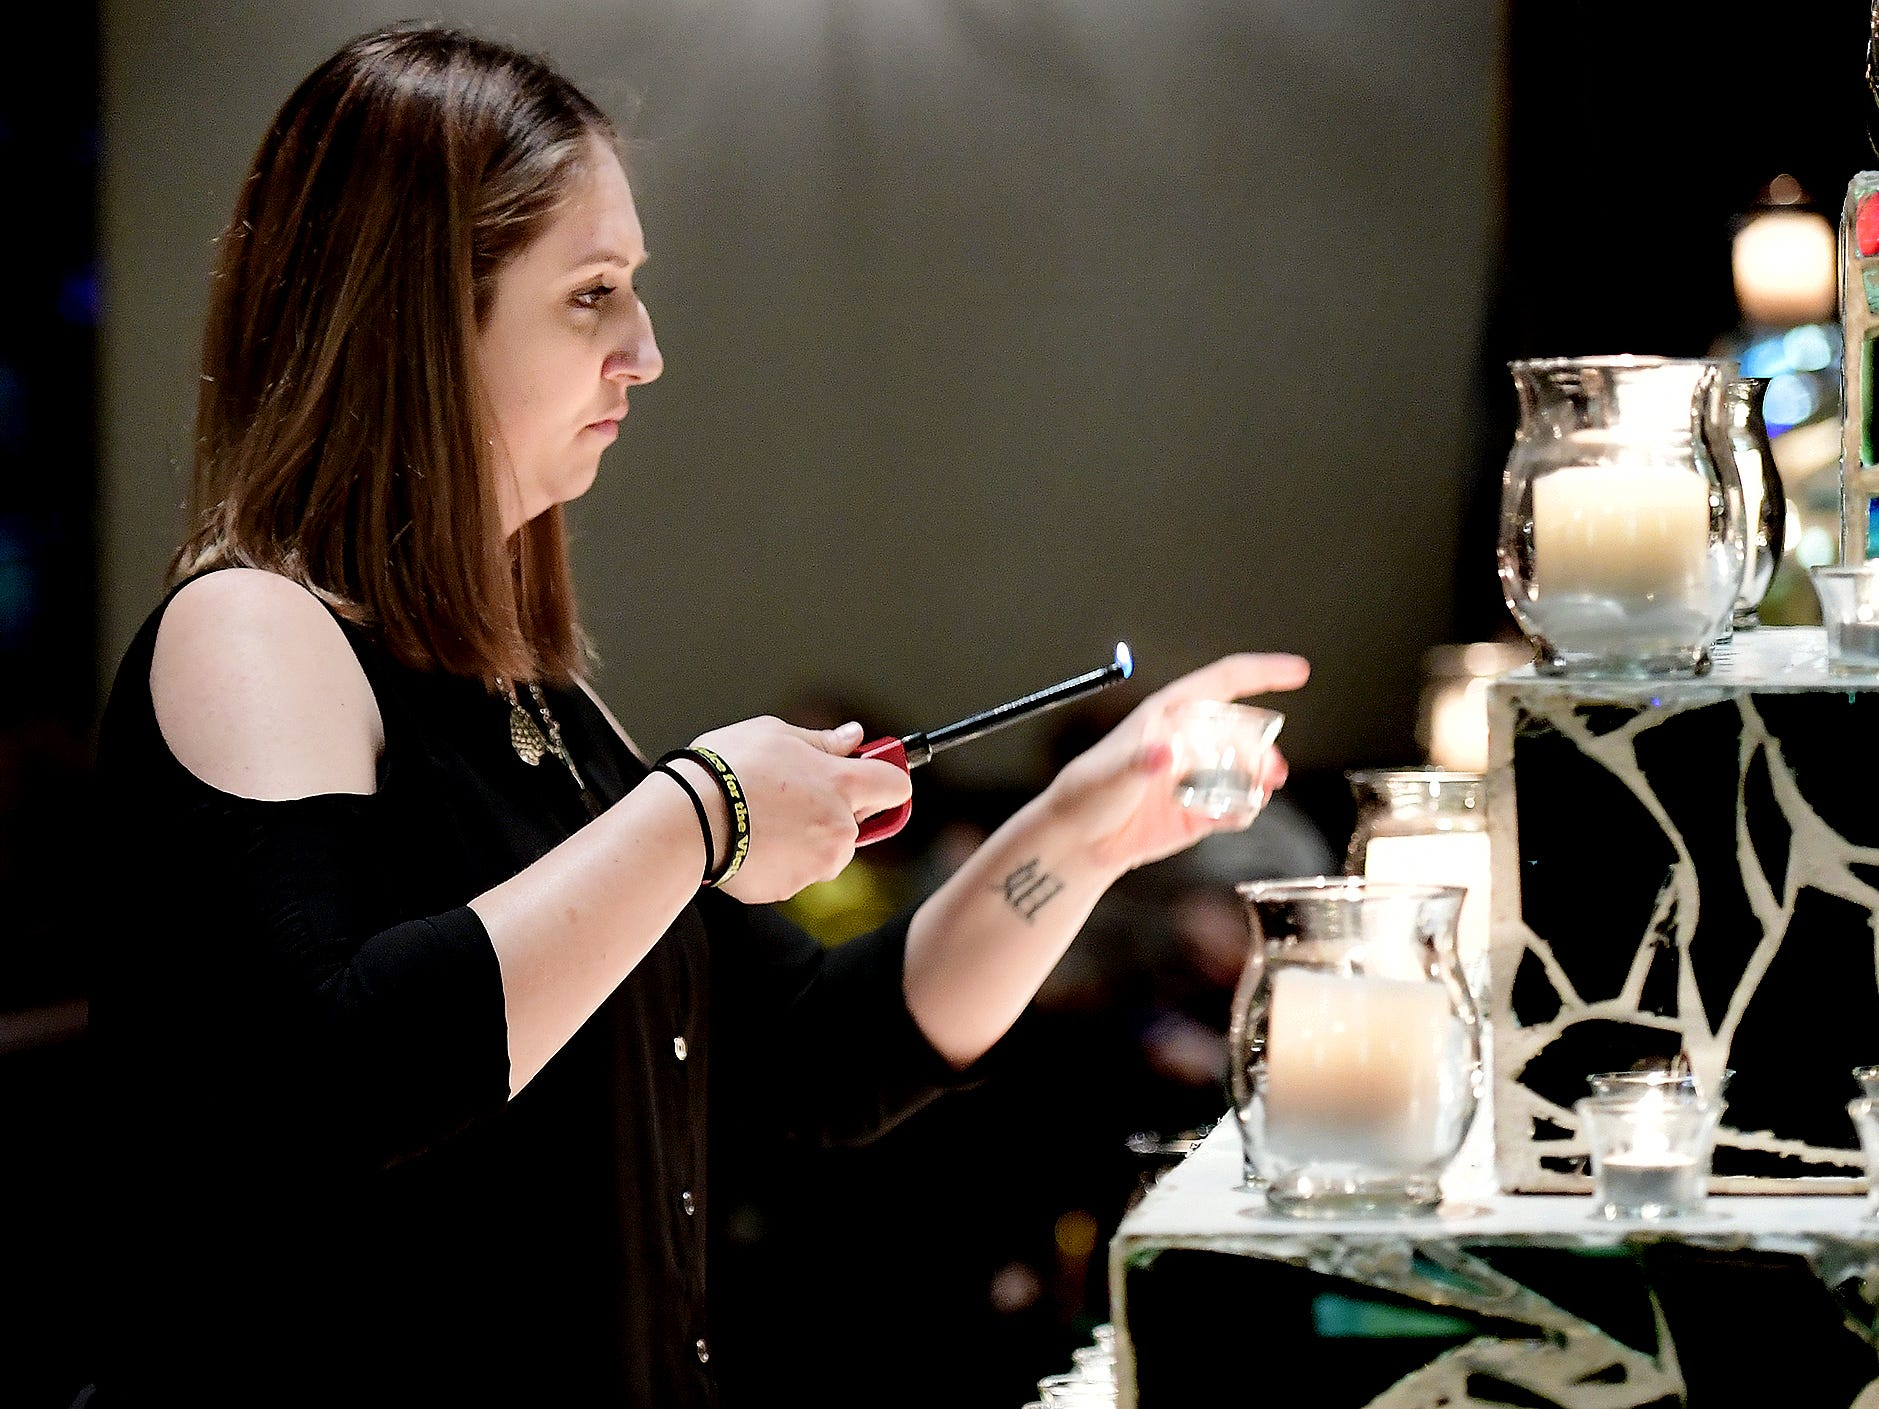 Katie Hershey of the YWCA Victims' Services Program,  lights a candles at Trinity United Church of Christ during the 33rd annual Crime Victims' Rights March and Candlelight Vigil Tuesday, April 9, 2019. Participants gathered at the Colonial Courthouse for a presentation before marching to the church for a ceremony and candlelight vigil. She volunteers for the York County Victims' Rights Coalition which sponsored the event for National Crime Victims' Rights Week. Bill Kalina photo